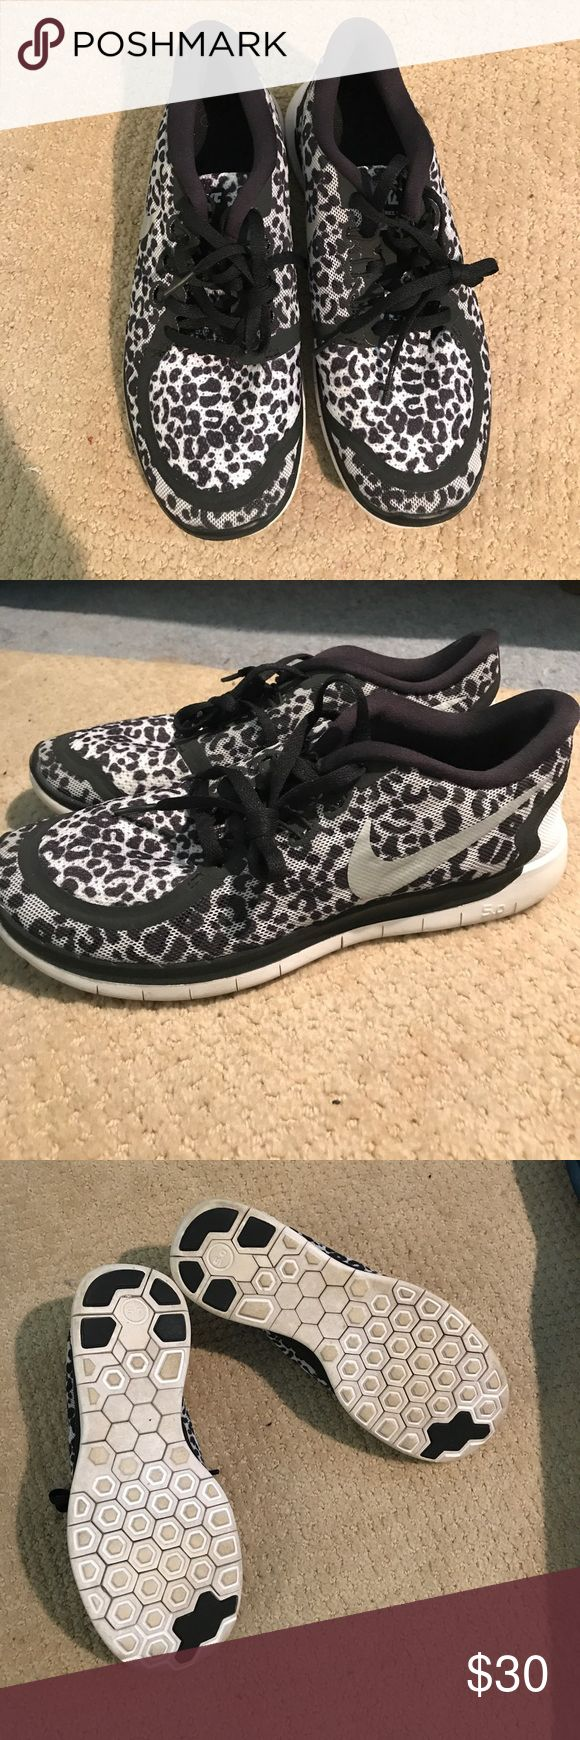 Nike Free 5.0 Running Shoe I'm now an Adidas Athlete so I can no longer where Nike shoes. I loved these Cheetah Print Frees. I'm a Women's 7 and these Kid's 5.5 fit great. Nike Shoes Athletic Shoes